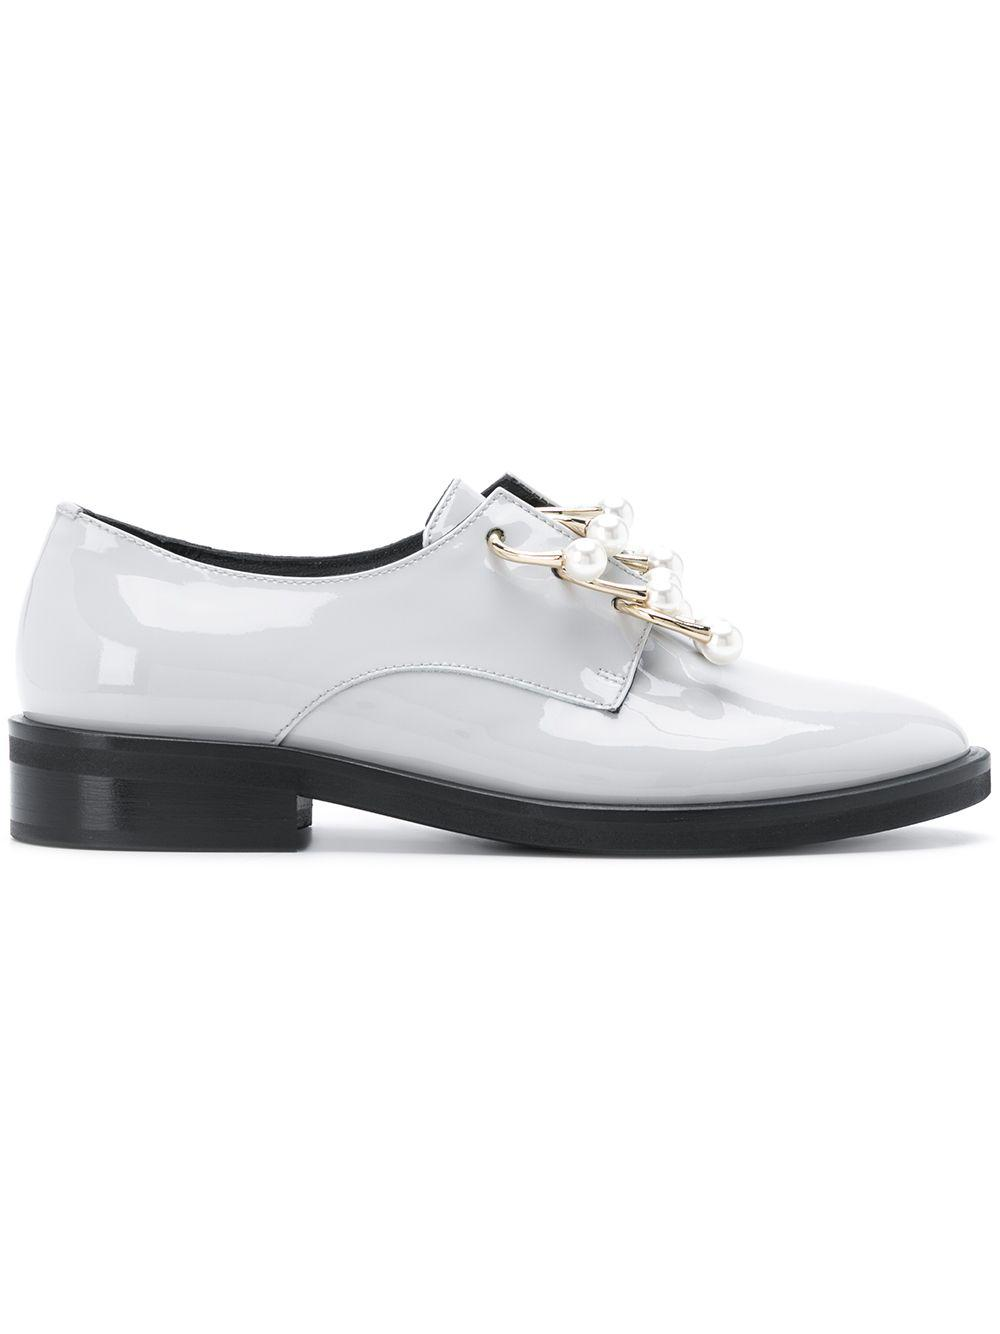 39842e3f3d Coliac - Gray Anello Embellished Derby Shoes - Lyst. View fullscreen